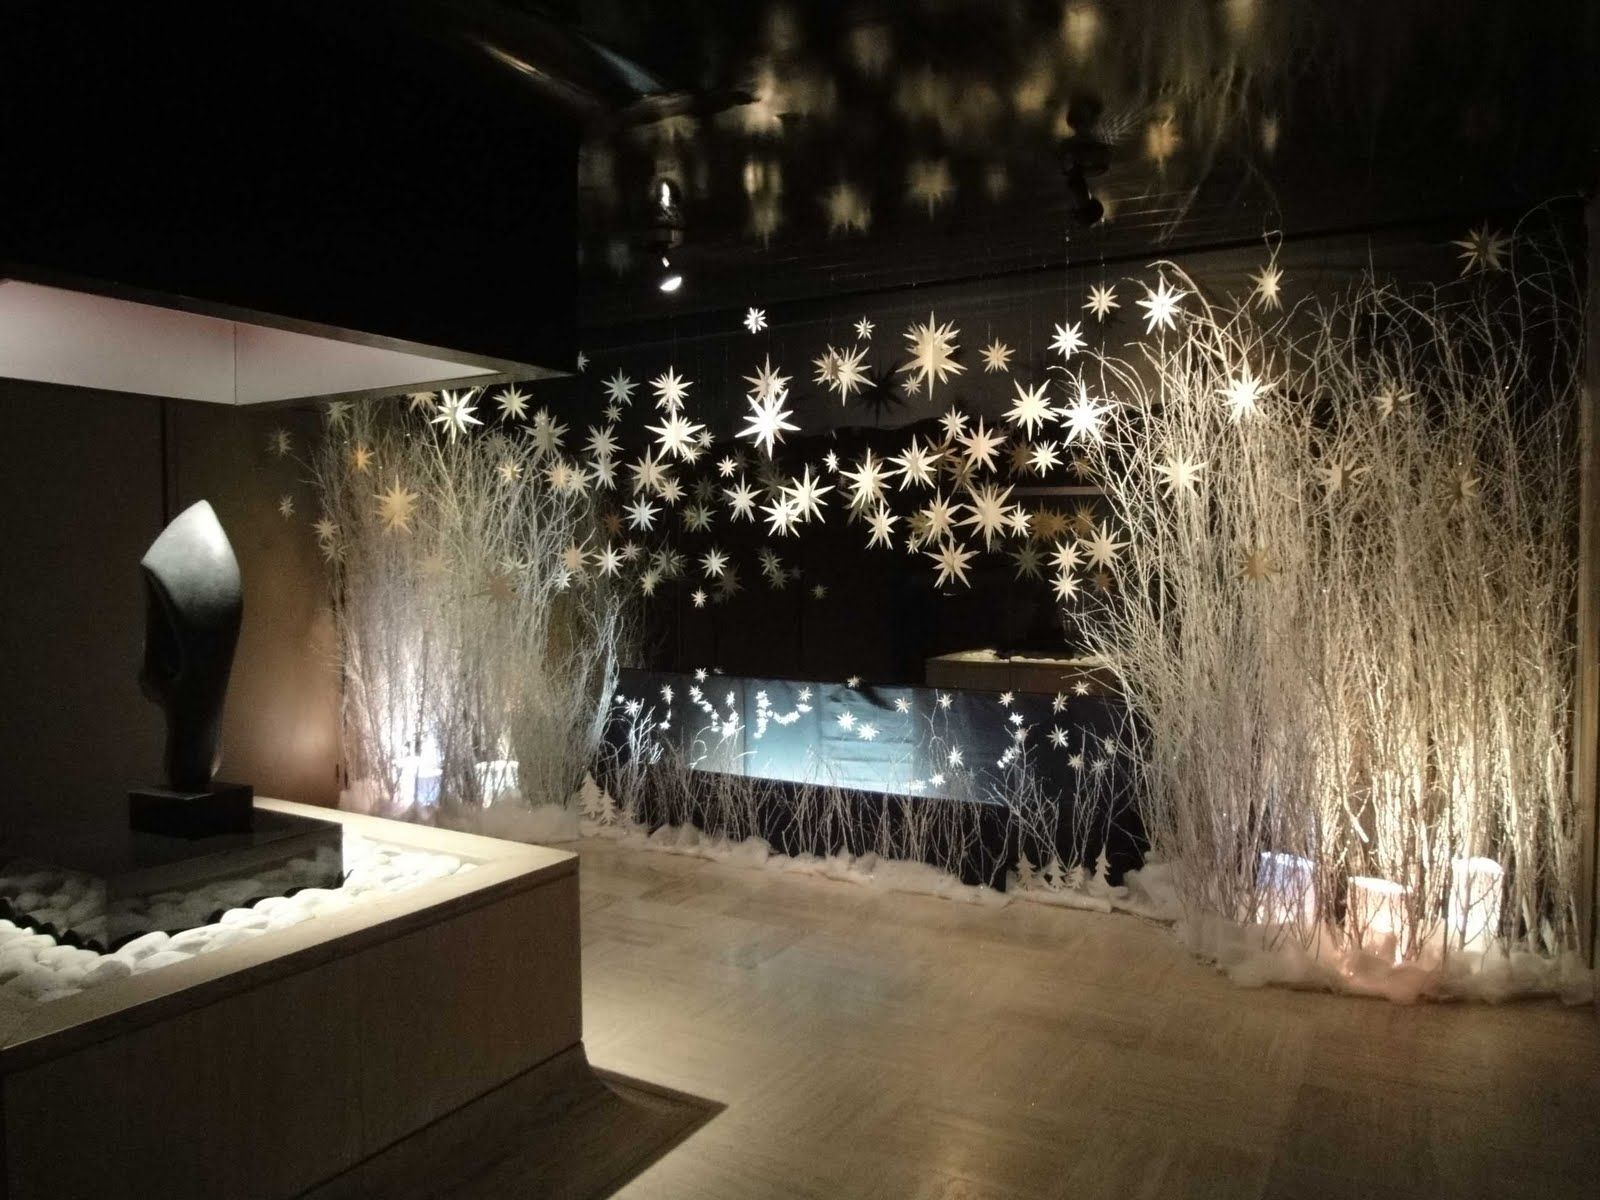 Christmas Eve Decorations Ideas for a Corporate Christmas Party in London